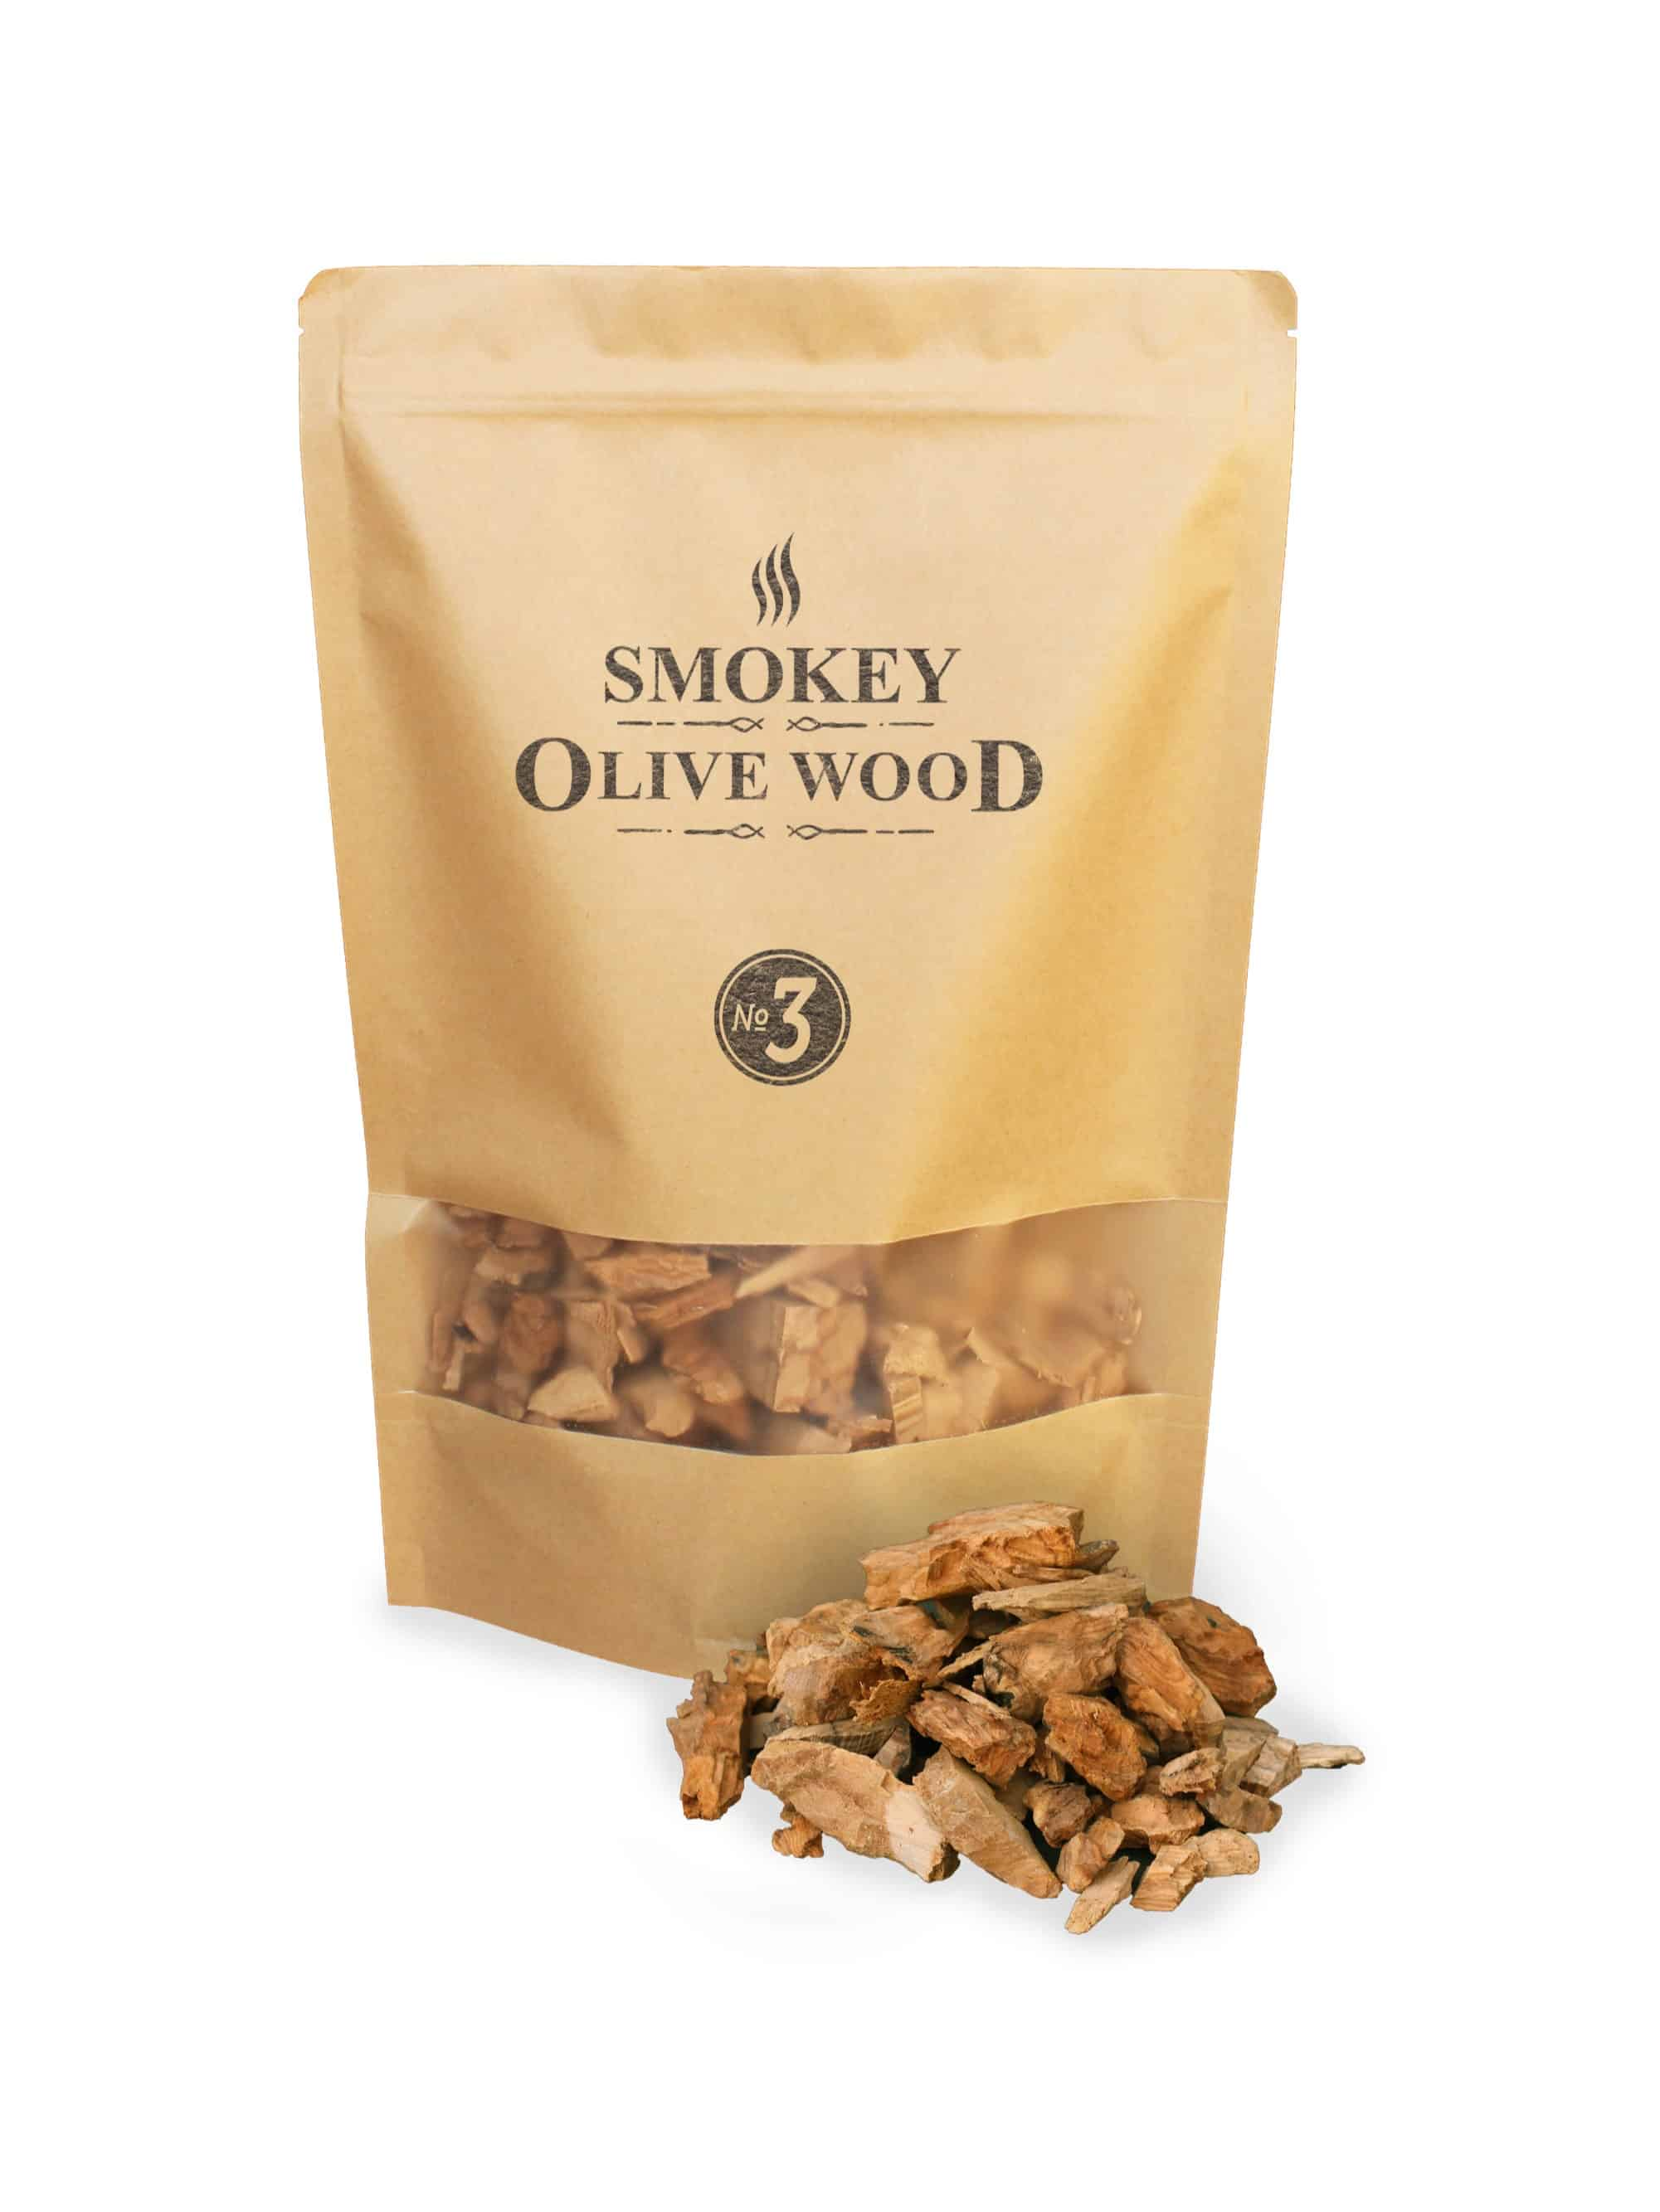 SOW Olive Wood Smoking Chips Nº3